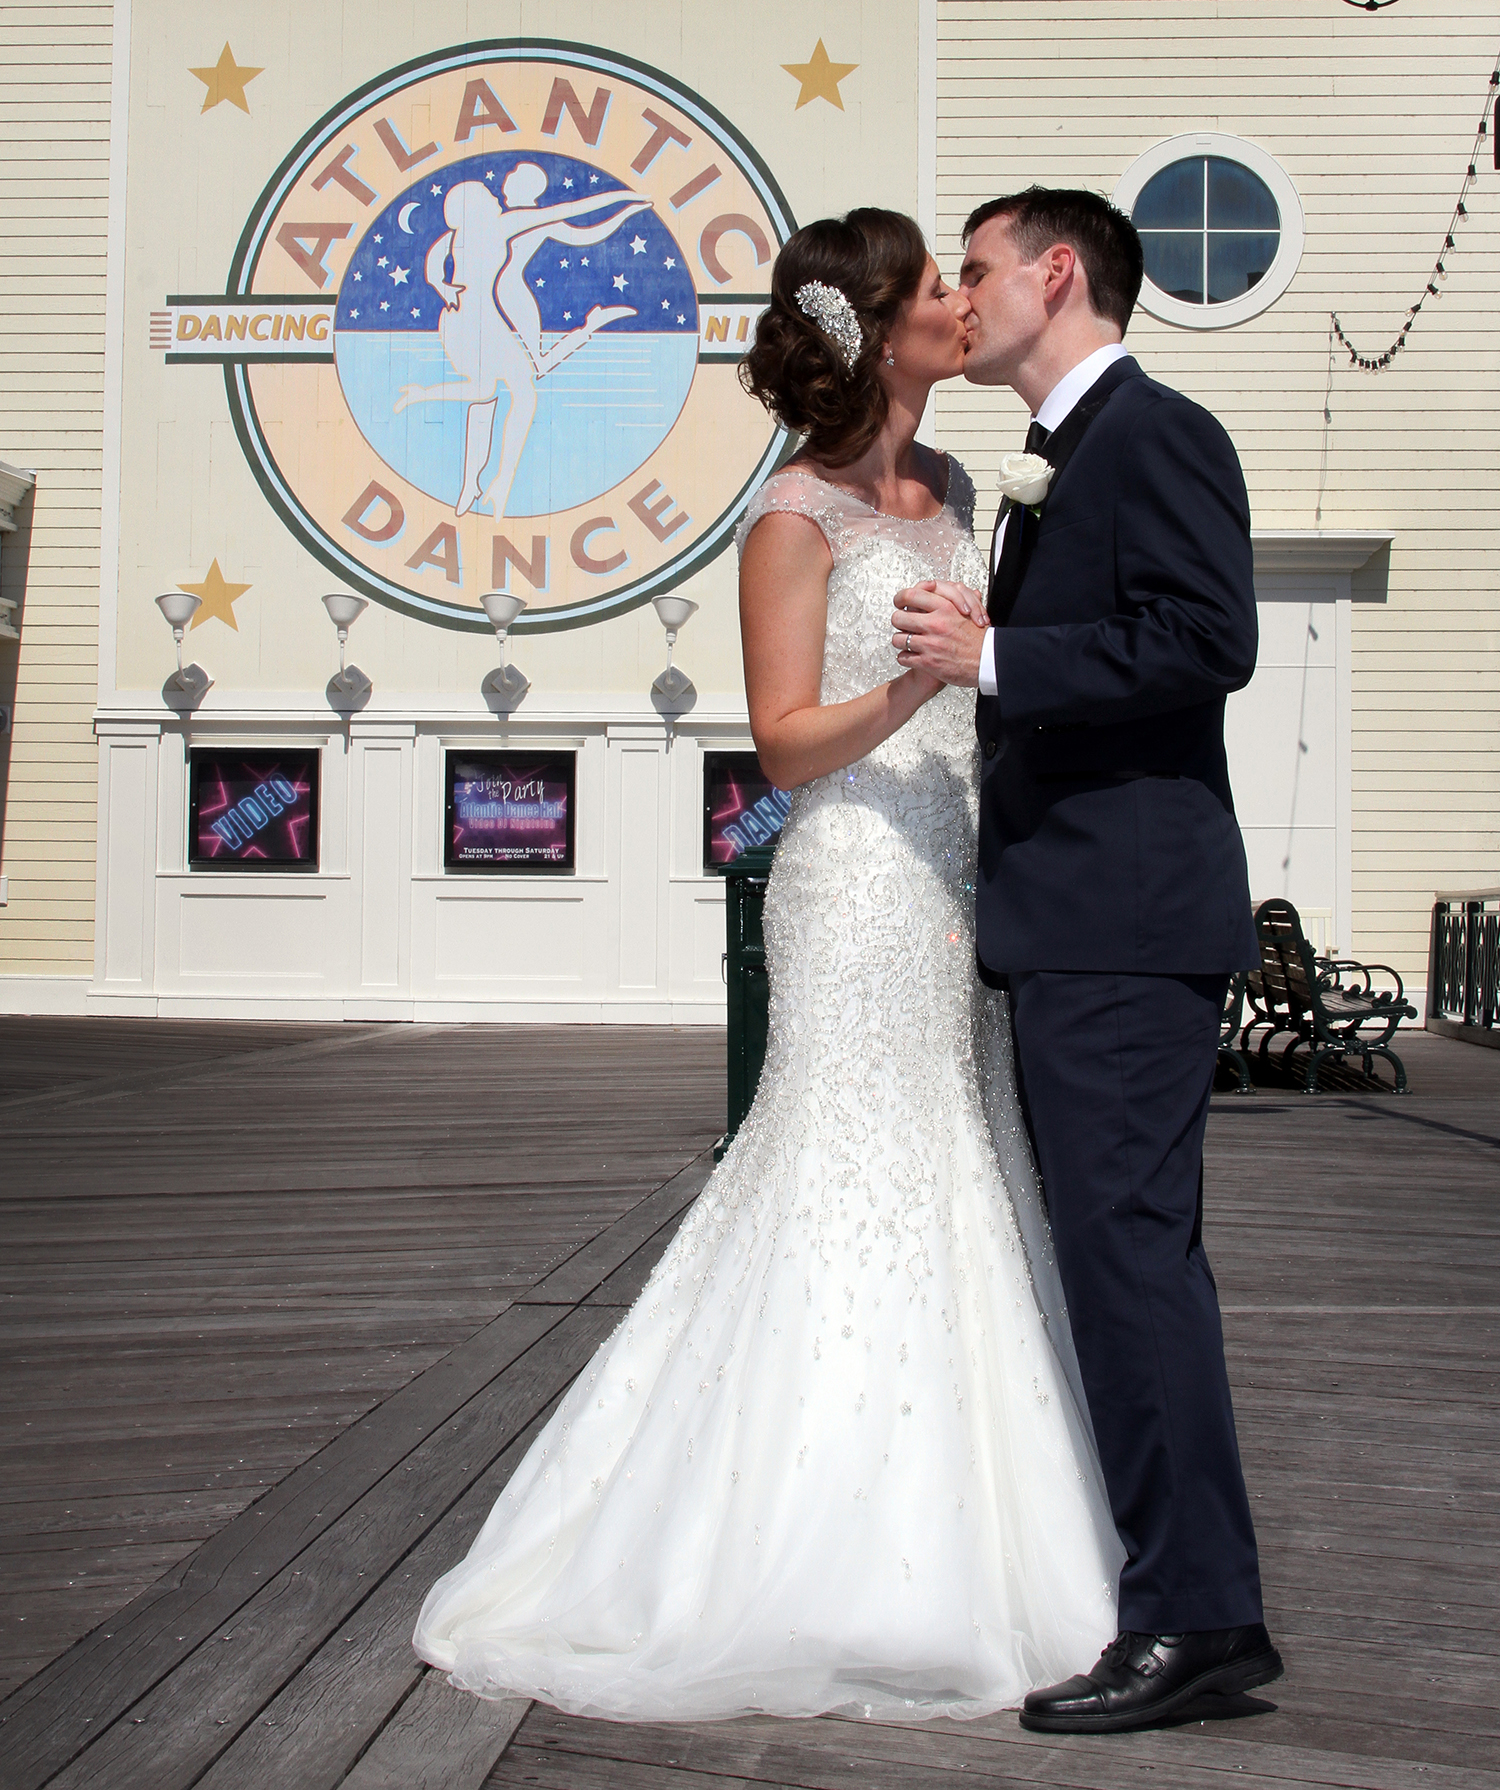 Swan and Dolphin Disney Wedding | Megan and Andrew